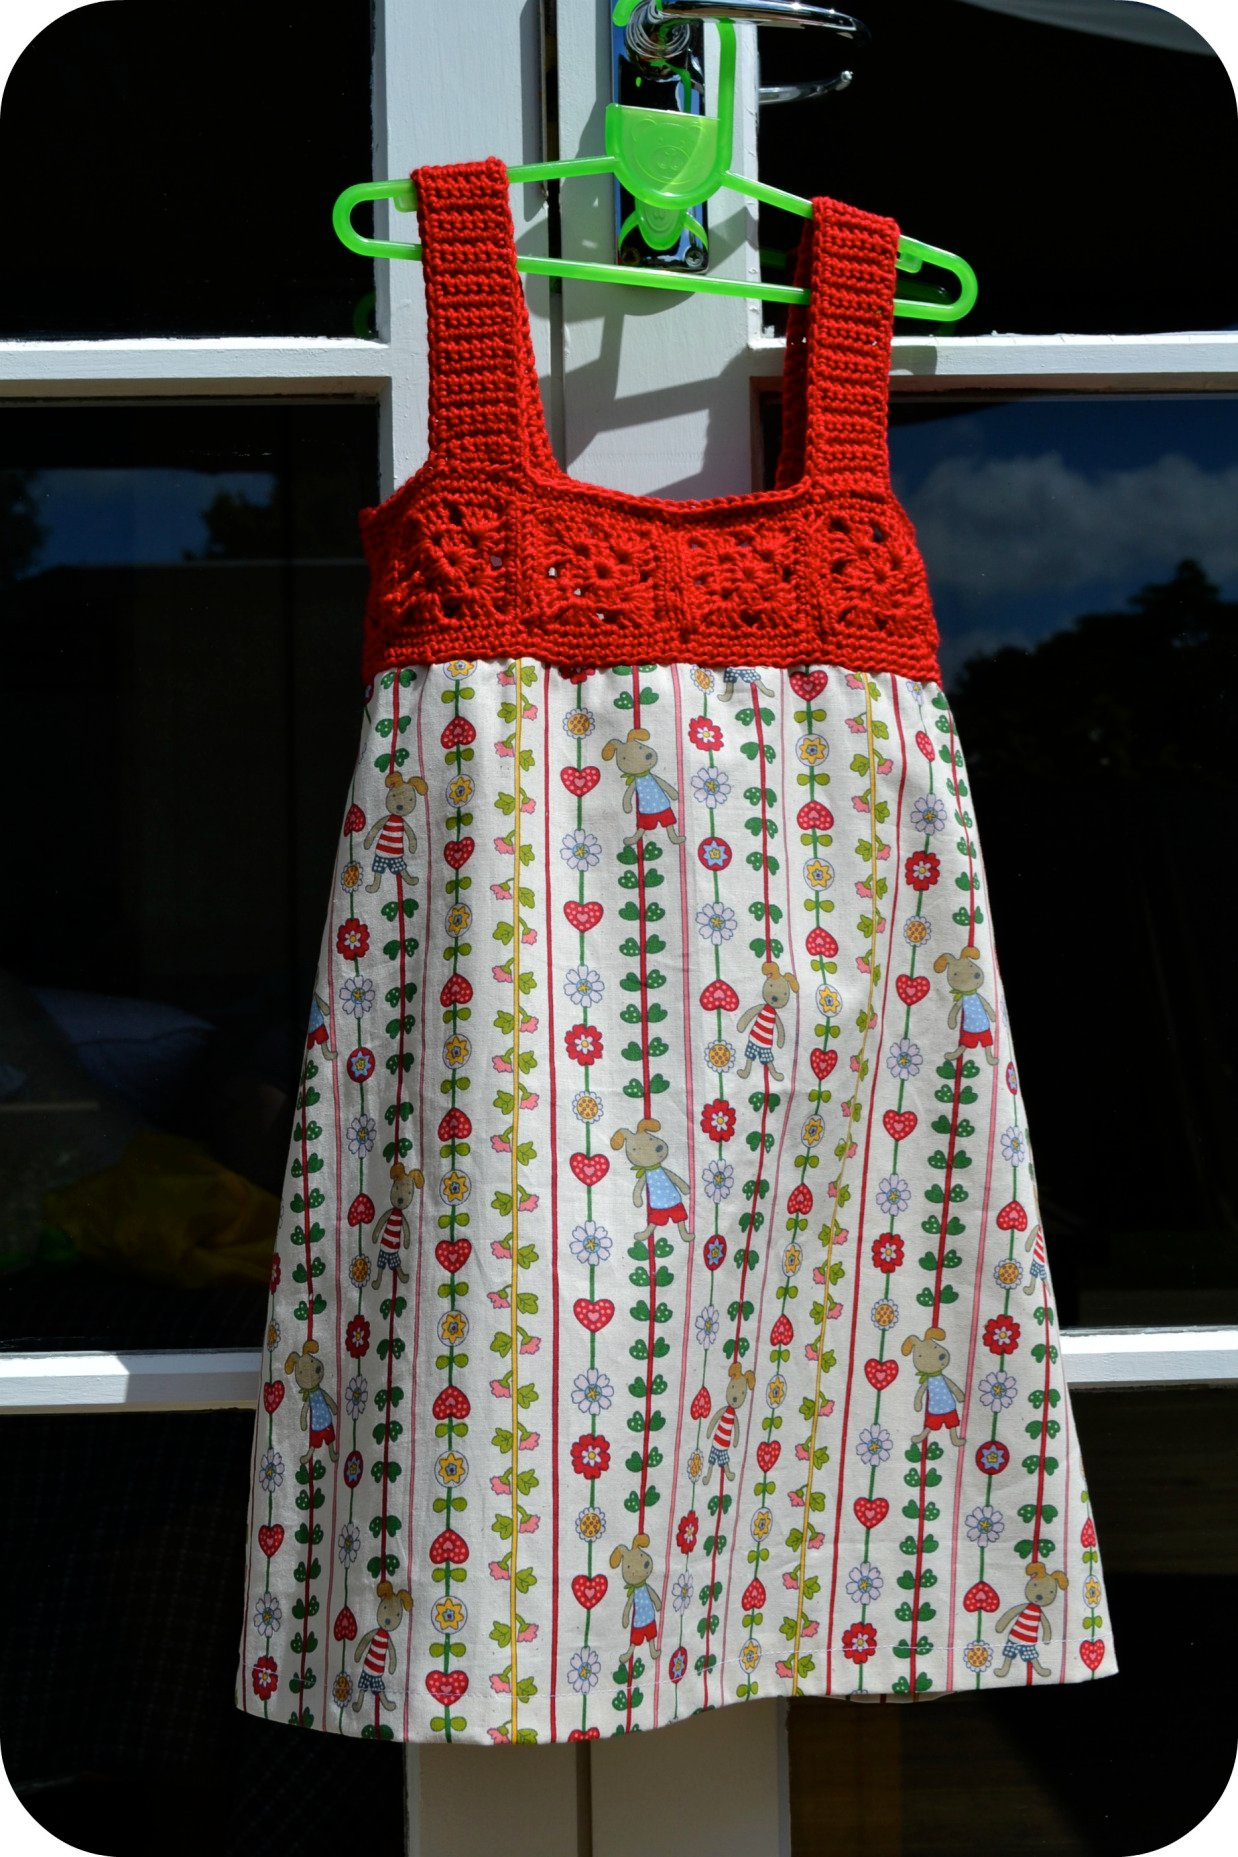 Free Printable Crochet Dress Patterns : 10+ Free Crochet and Fabric Dress Patterns - Page 2 of 3